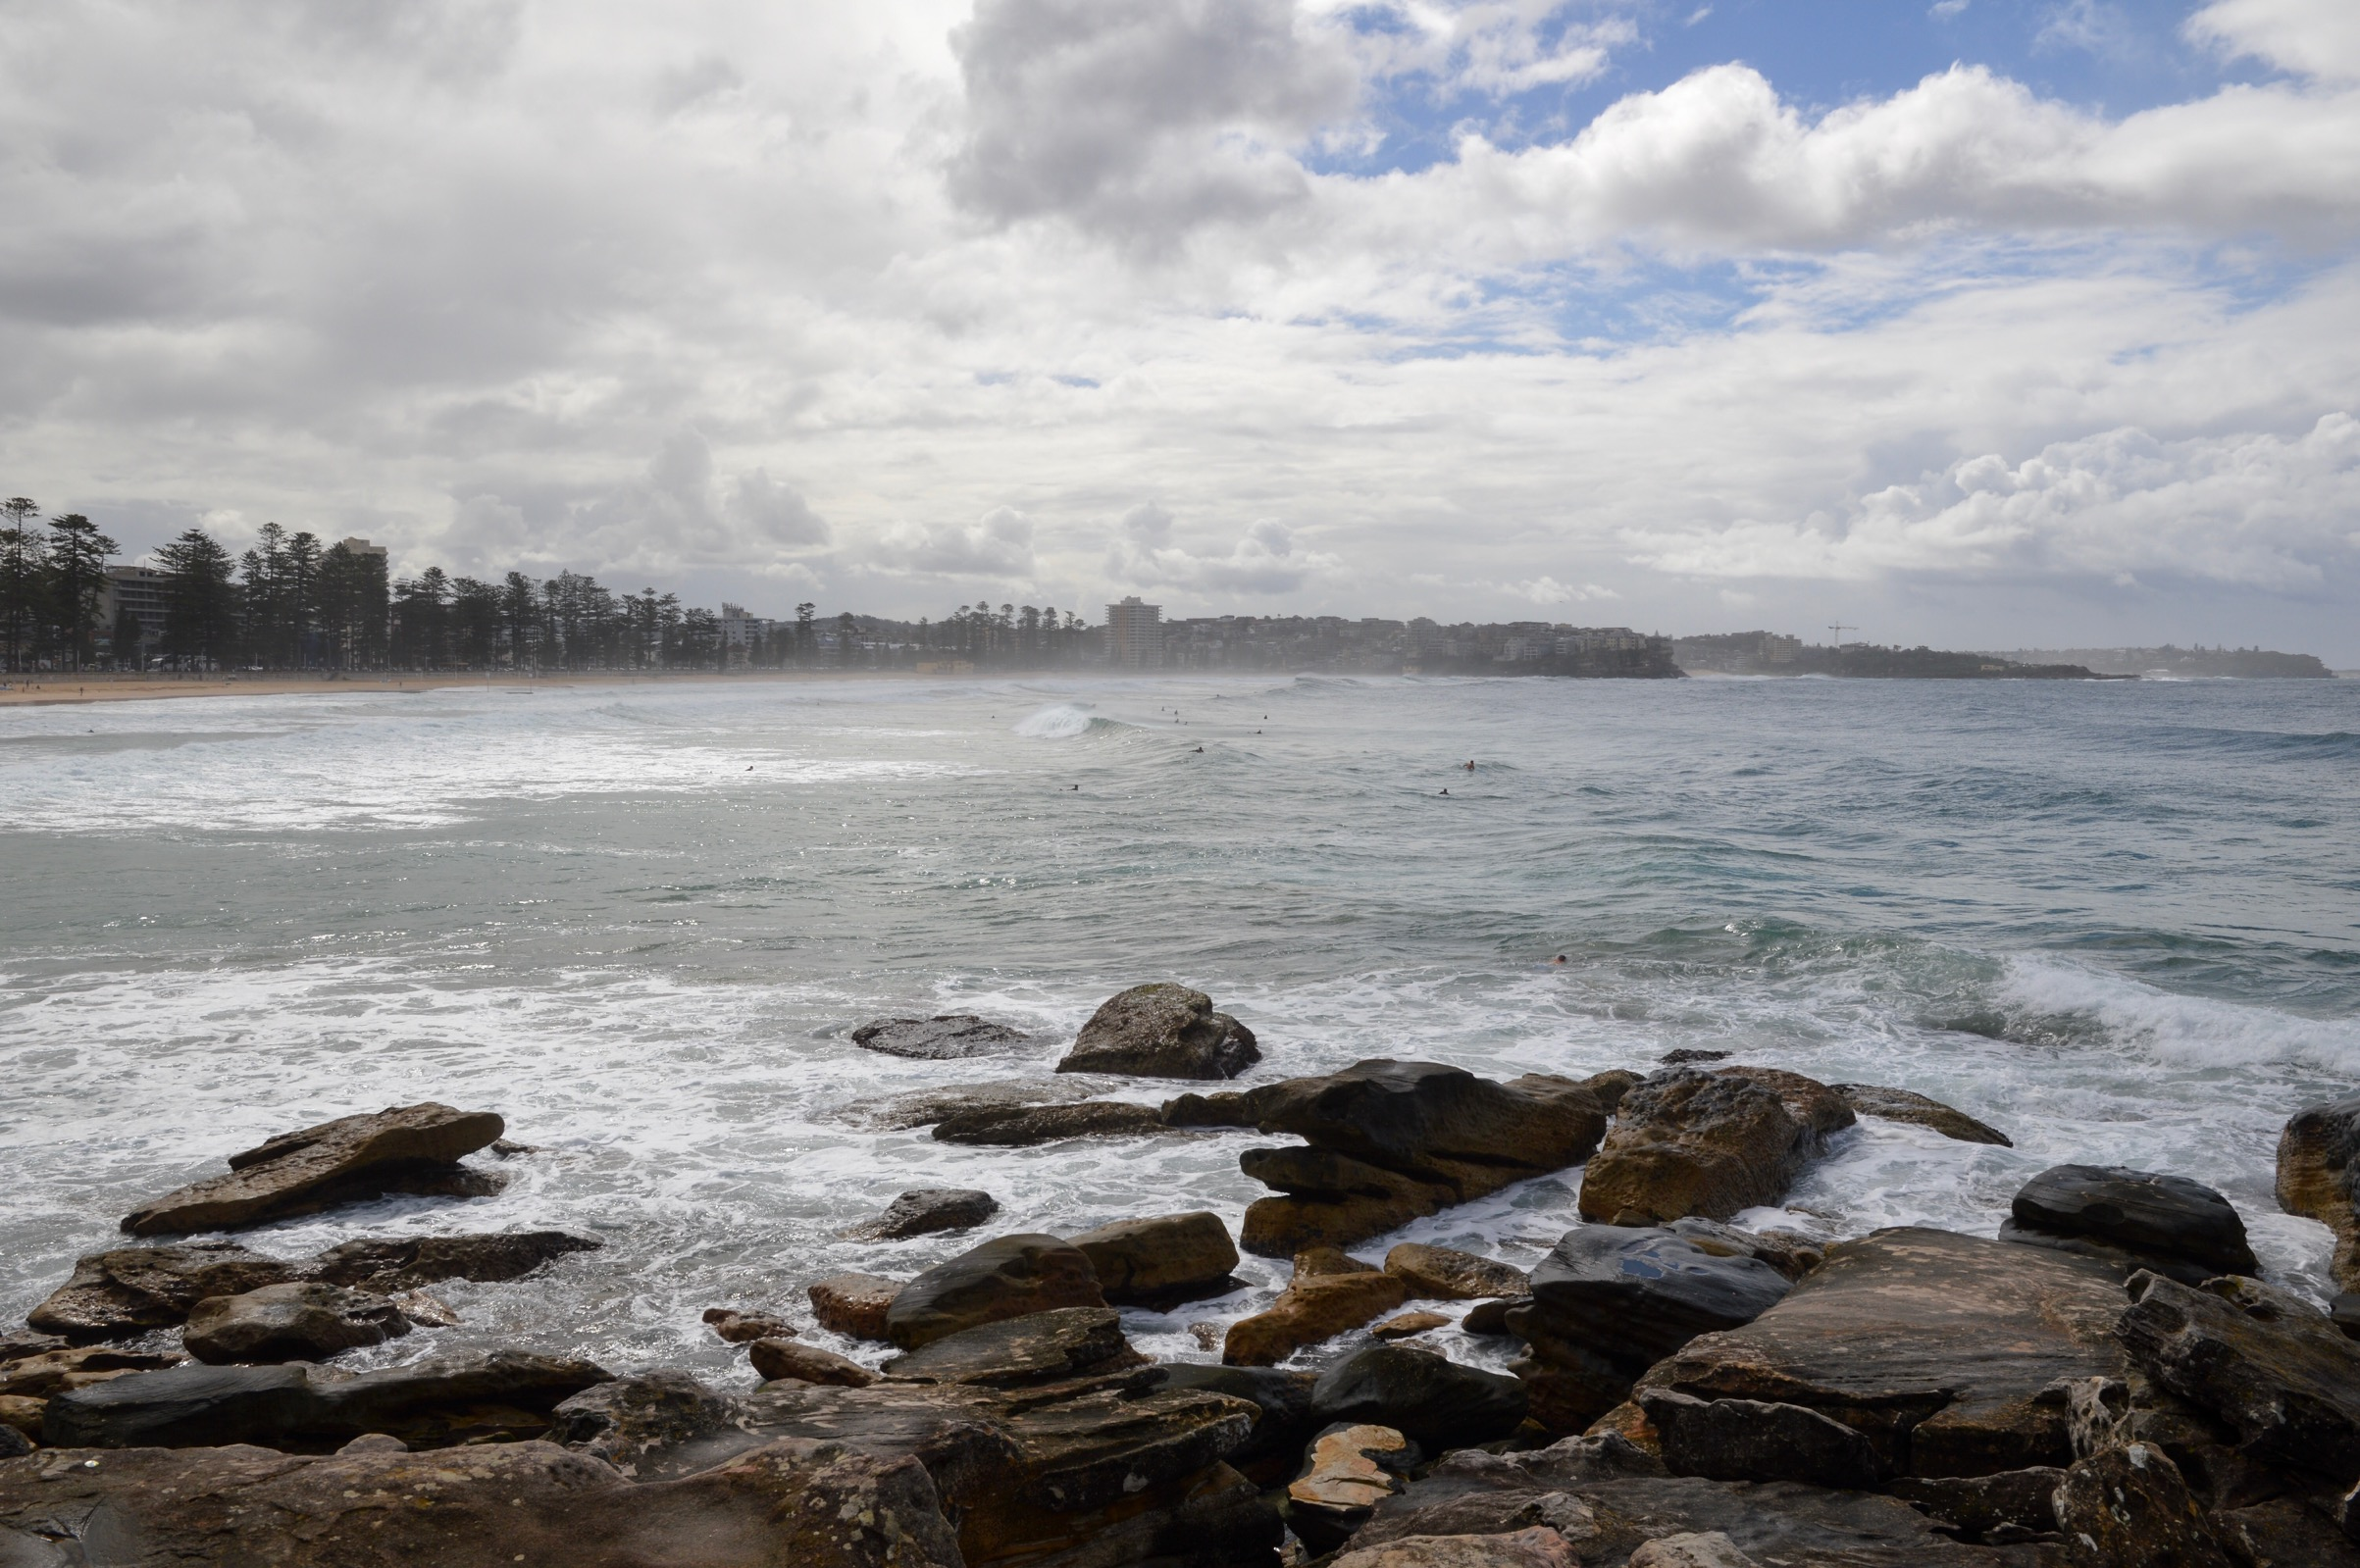 South Pacific Ocean and Manly Beach, Sydney, Australia